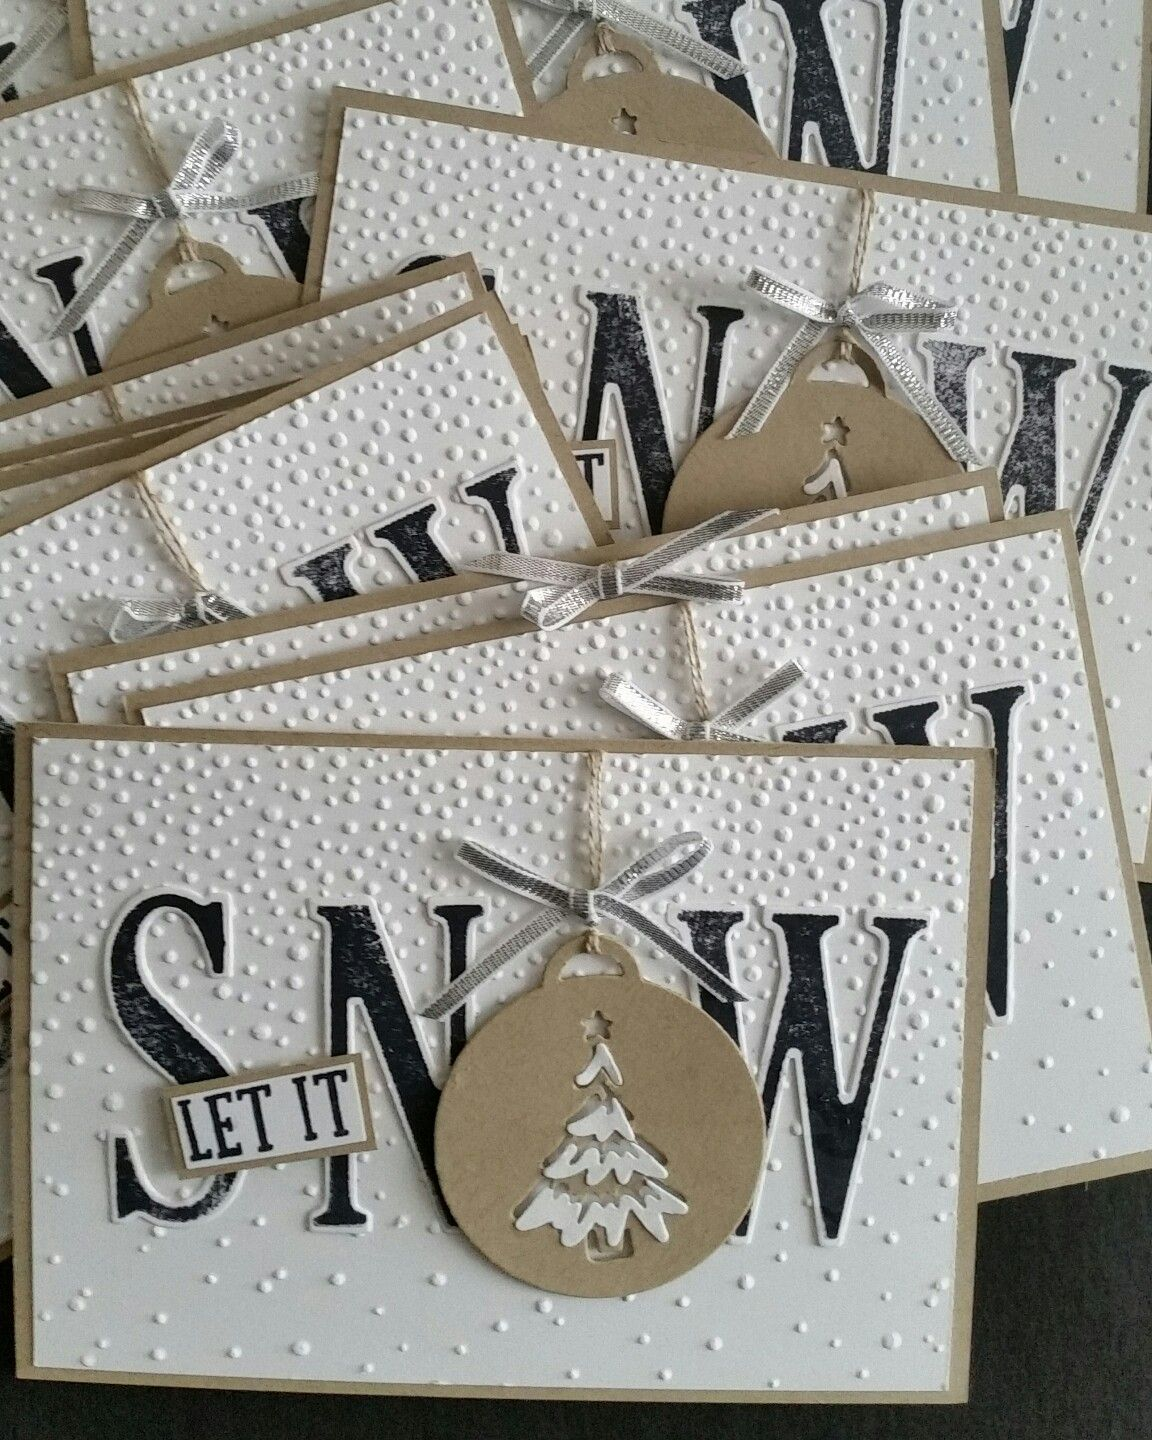 cards snow emcossedsnow background mat let it snwn treetag papierliebe weihnachten. Black Bedroom Furniture Sets. Home Design Ideas